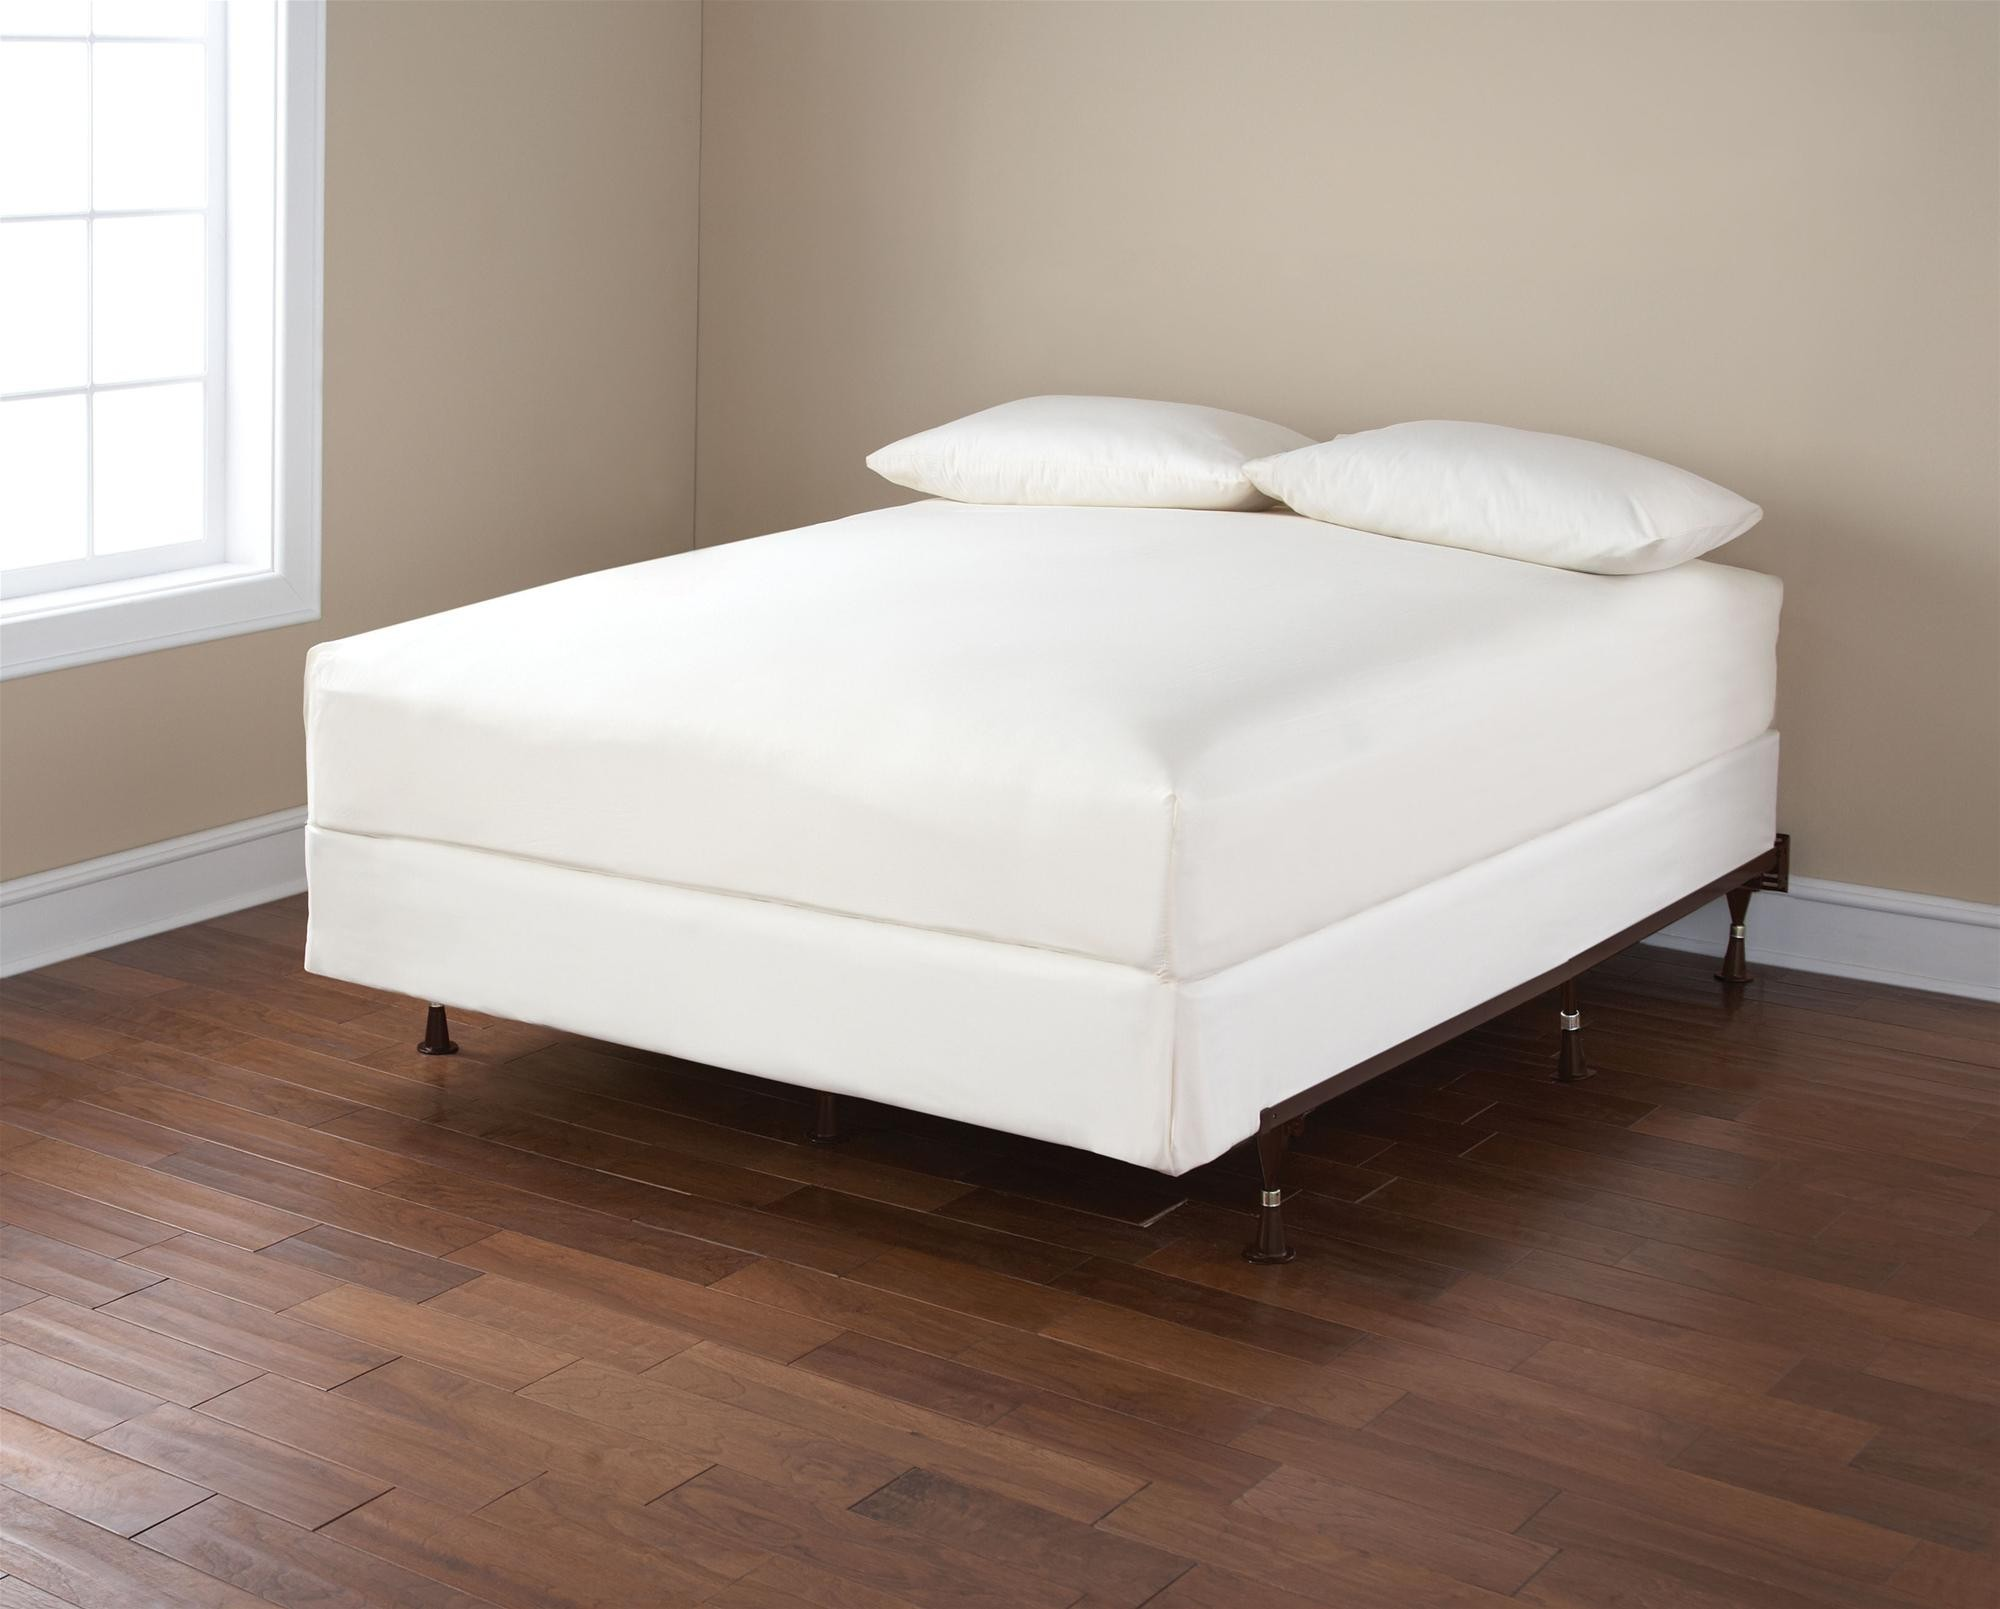 Image of: Full Size Mattress and Box Spring Ideas